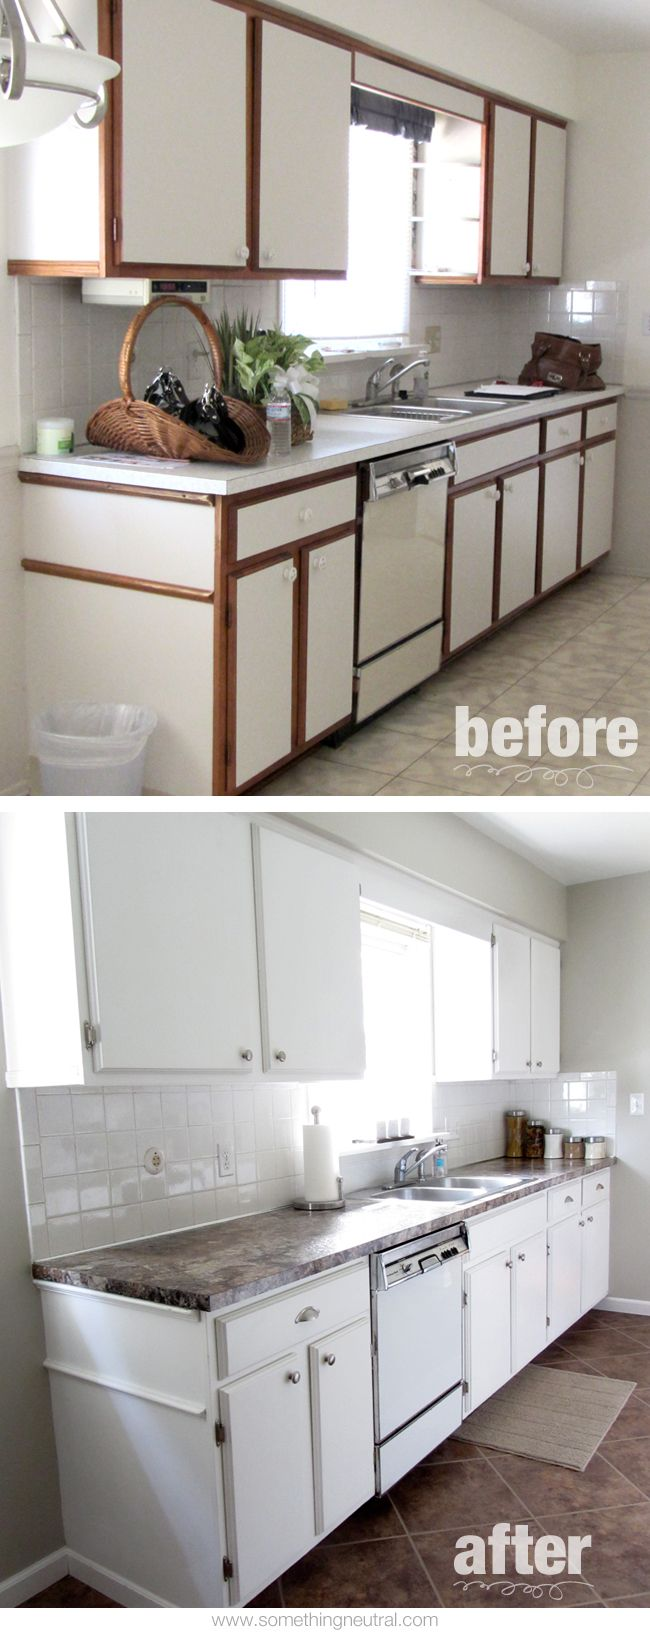 17 Best images about 80u0027s cabinets on Pinterest | How to paint, Painting  laminate cabinets and Farmhouse kitchens